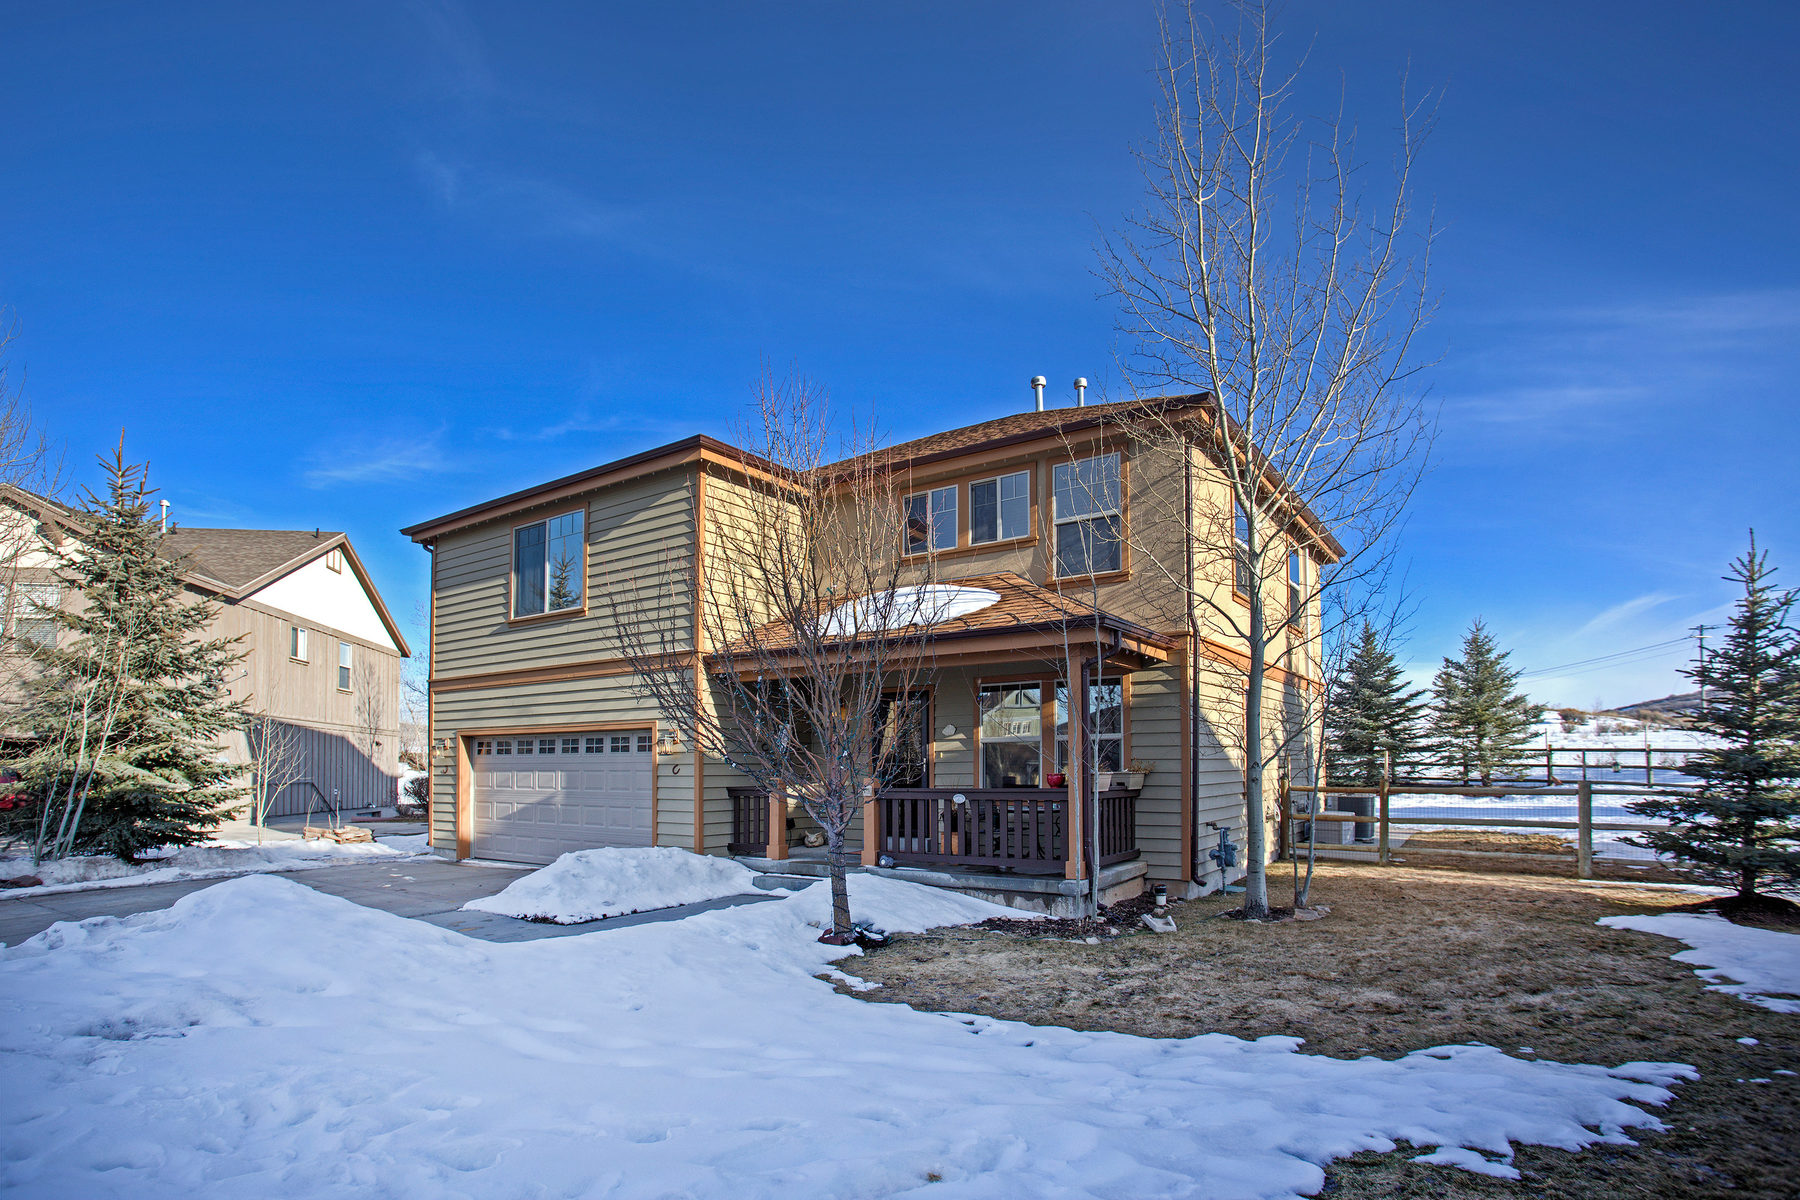 Single Family Home for Sale at Mountain Views with Direct Access to Round Valley Trail System 980 Mountain Willow Ln Park City, Utah, 84098 United States